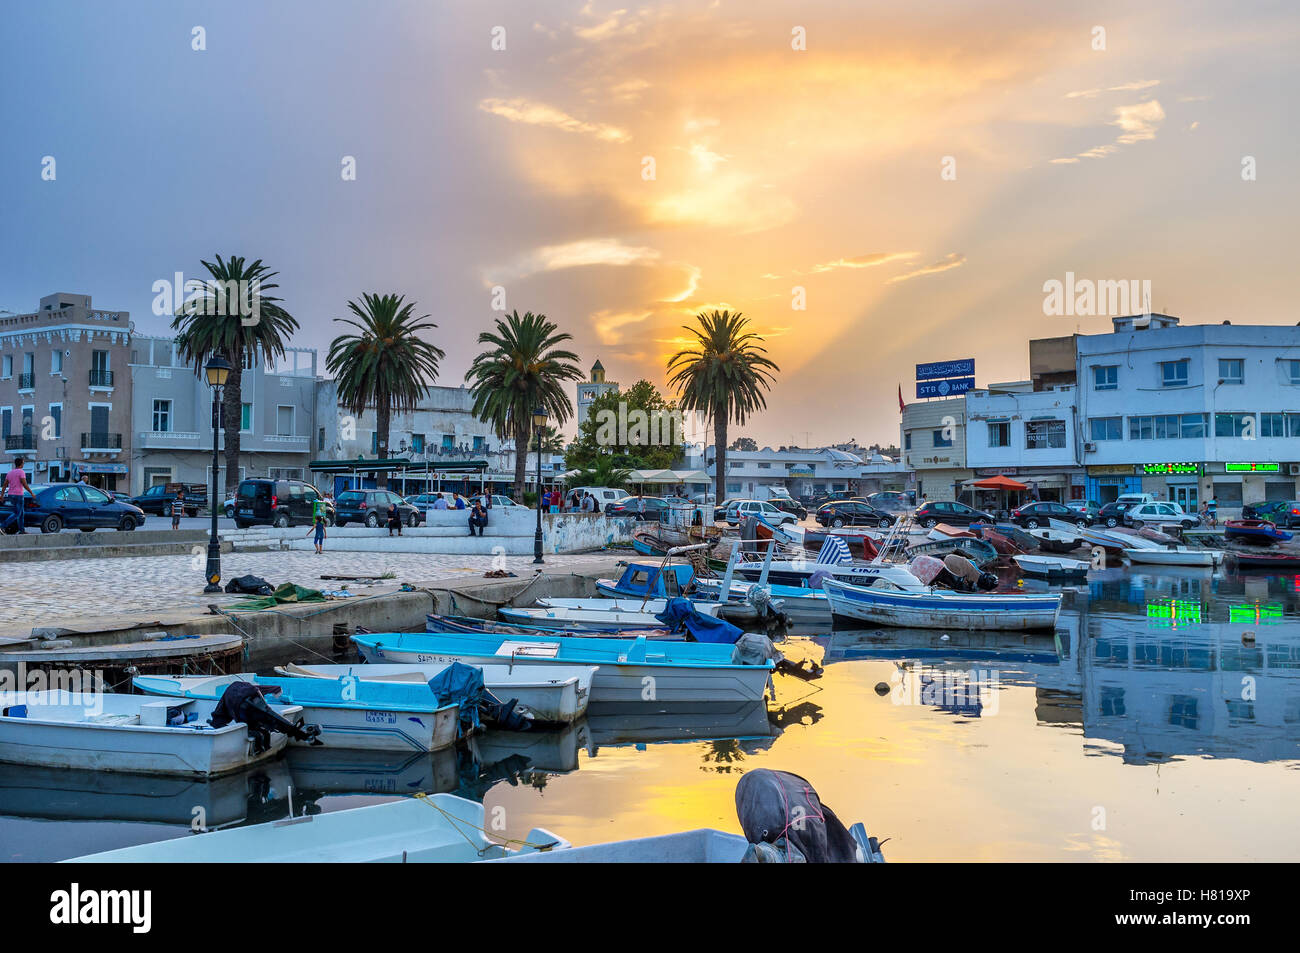 The beautiful sunset over the old port reflects in water Stock Photo